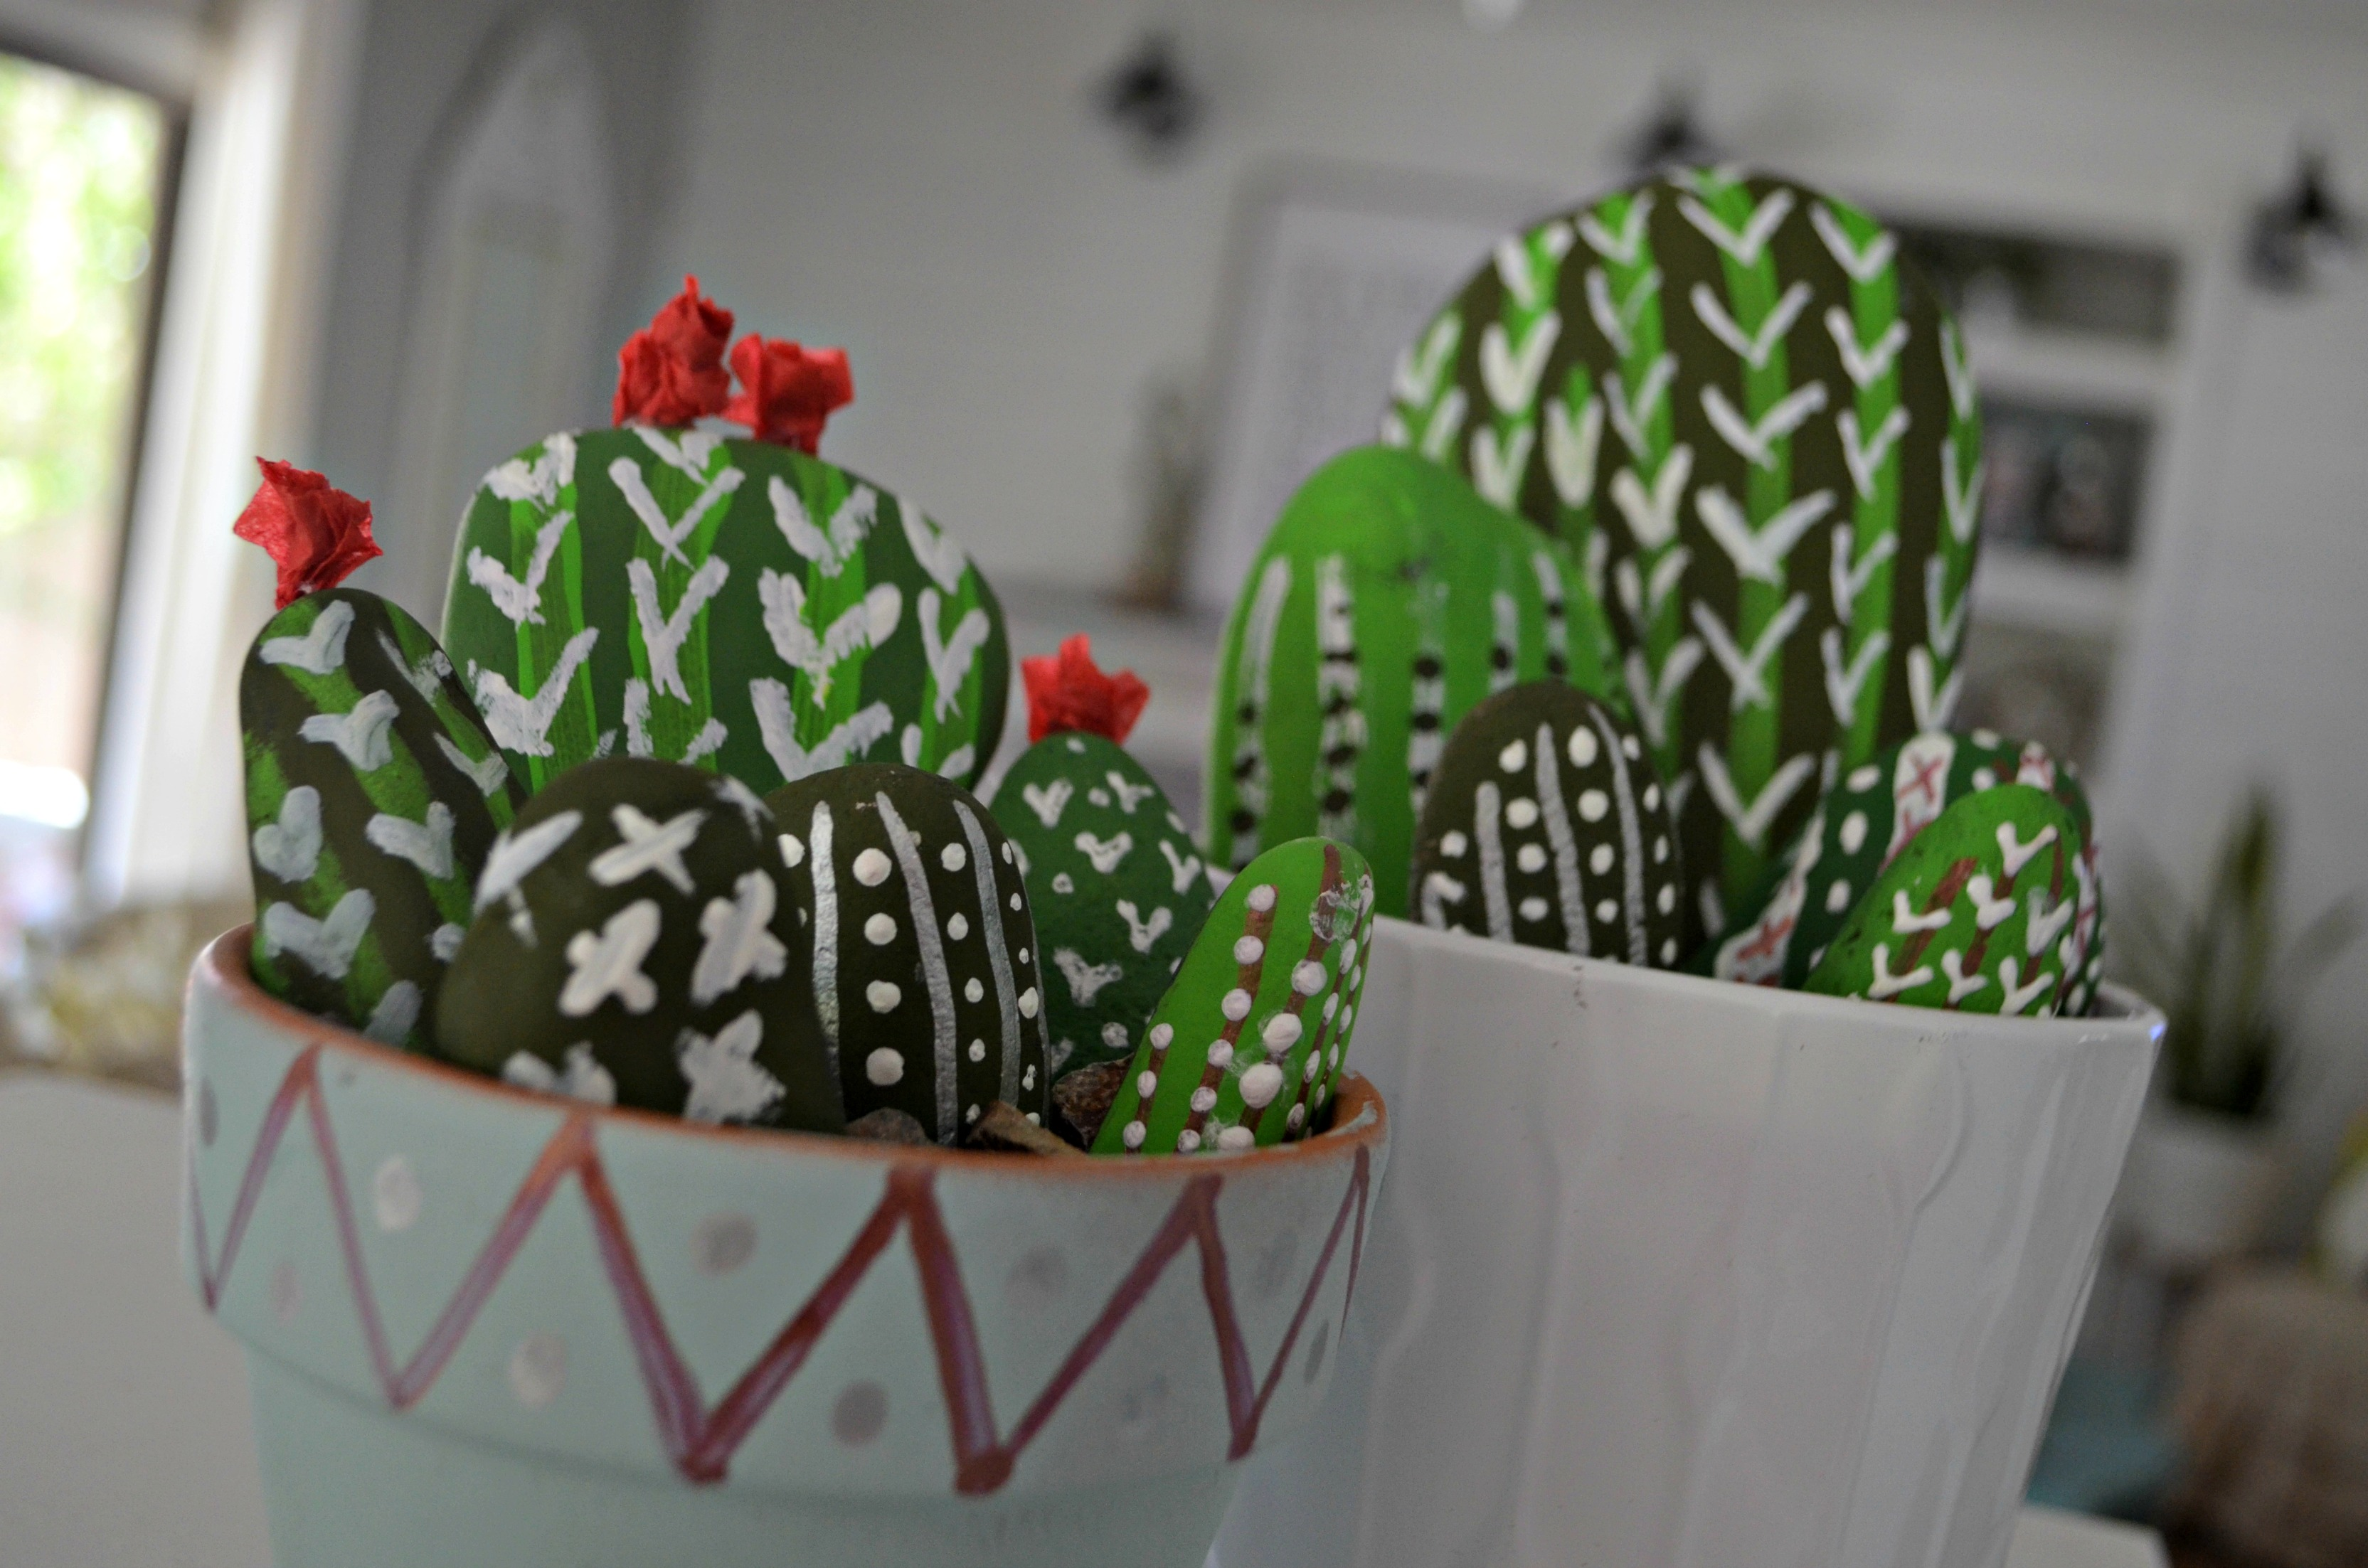 ... The Possibilities Are Endless With All The Designs You Can Make Using  Paint! This DIY Rock Cactus Garden Craft Is Fun And Lets You Use Your  Imagination.